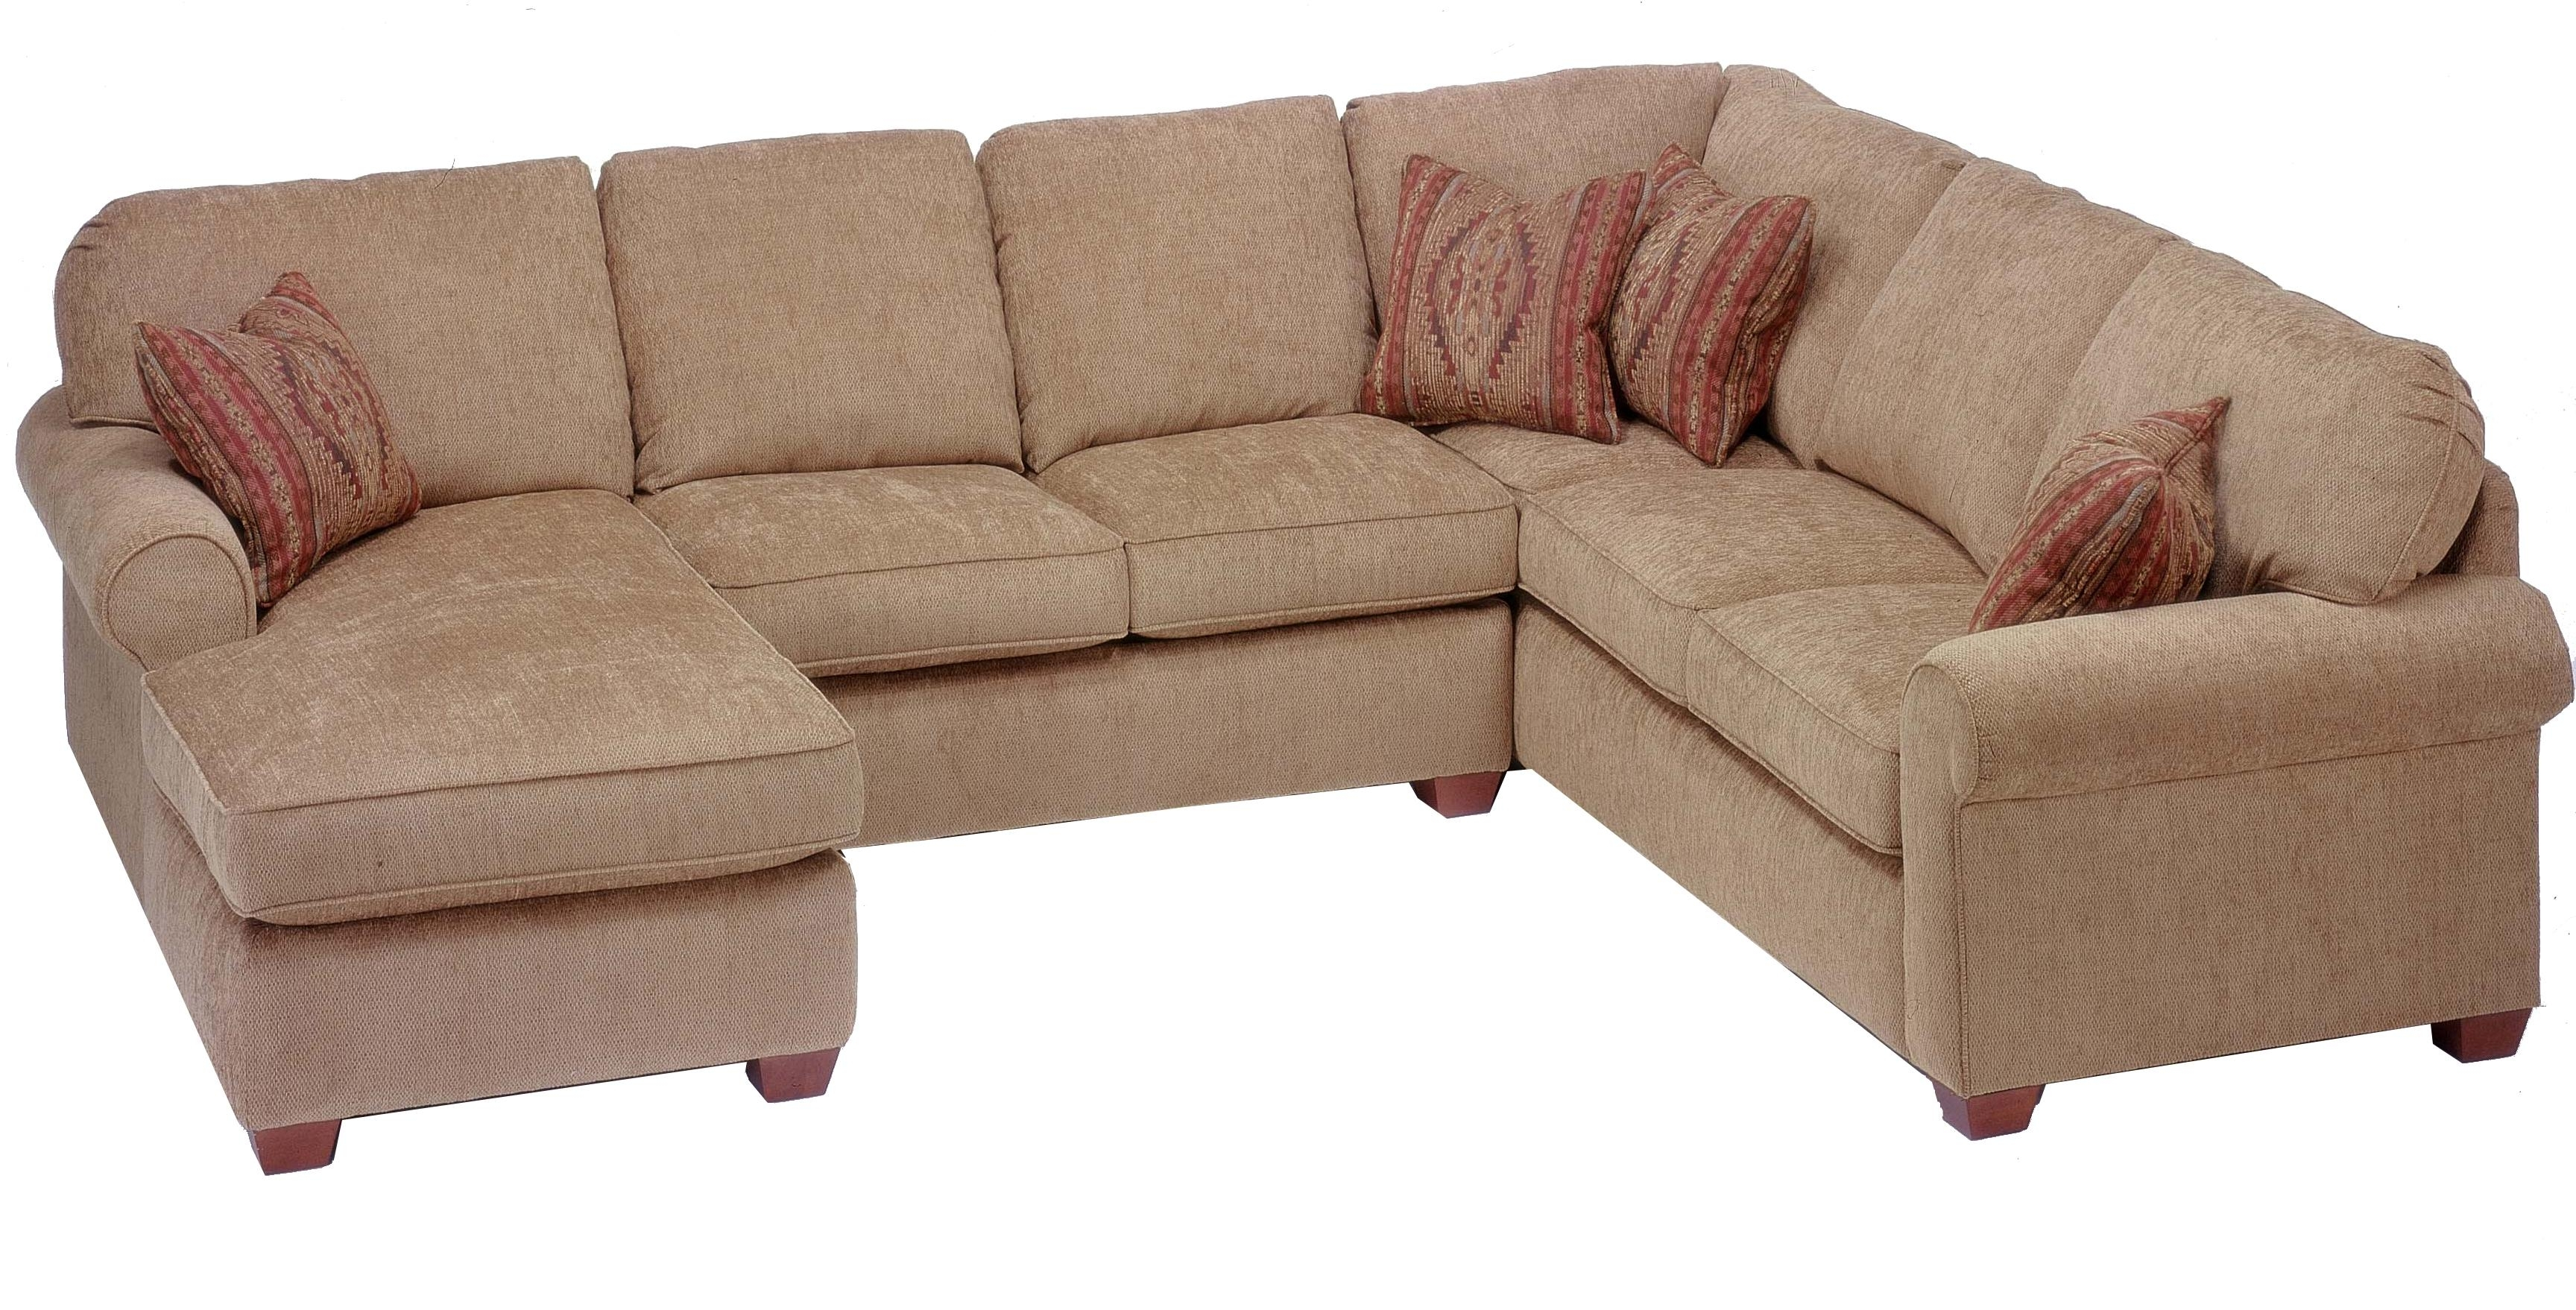 Flexsteel Thornton 3 Piece Sectional With Chaise – Ahfa – Sofa Regarding Blaine 3 Piece Sectionals (Image 12 of 25)